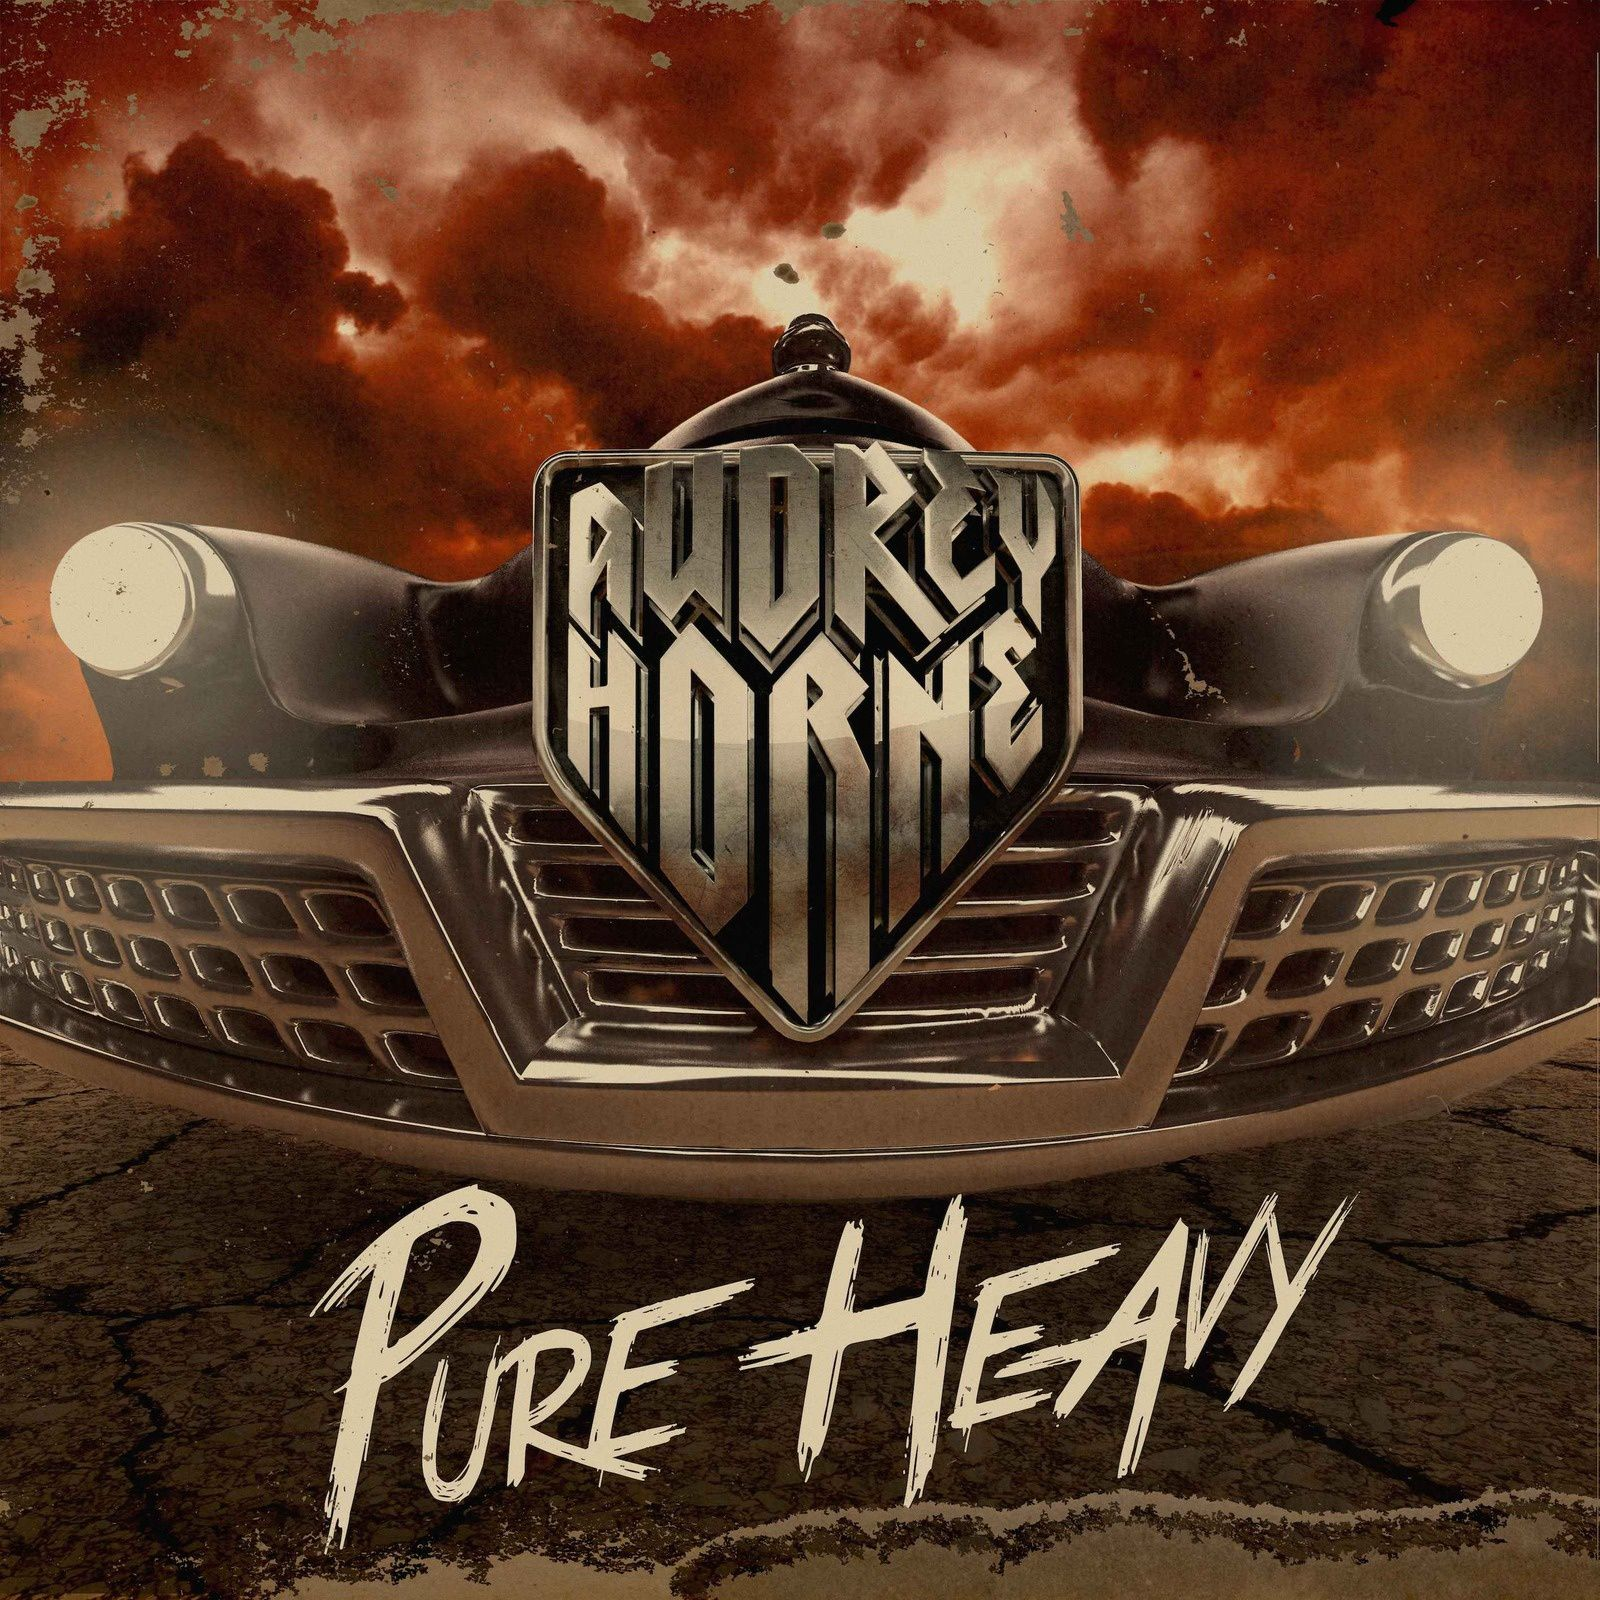 """CD review AUDREY HORNE """"Pure heavy"""""""